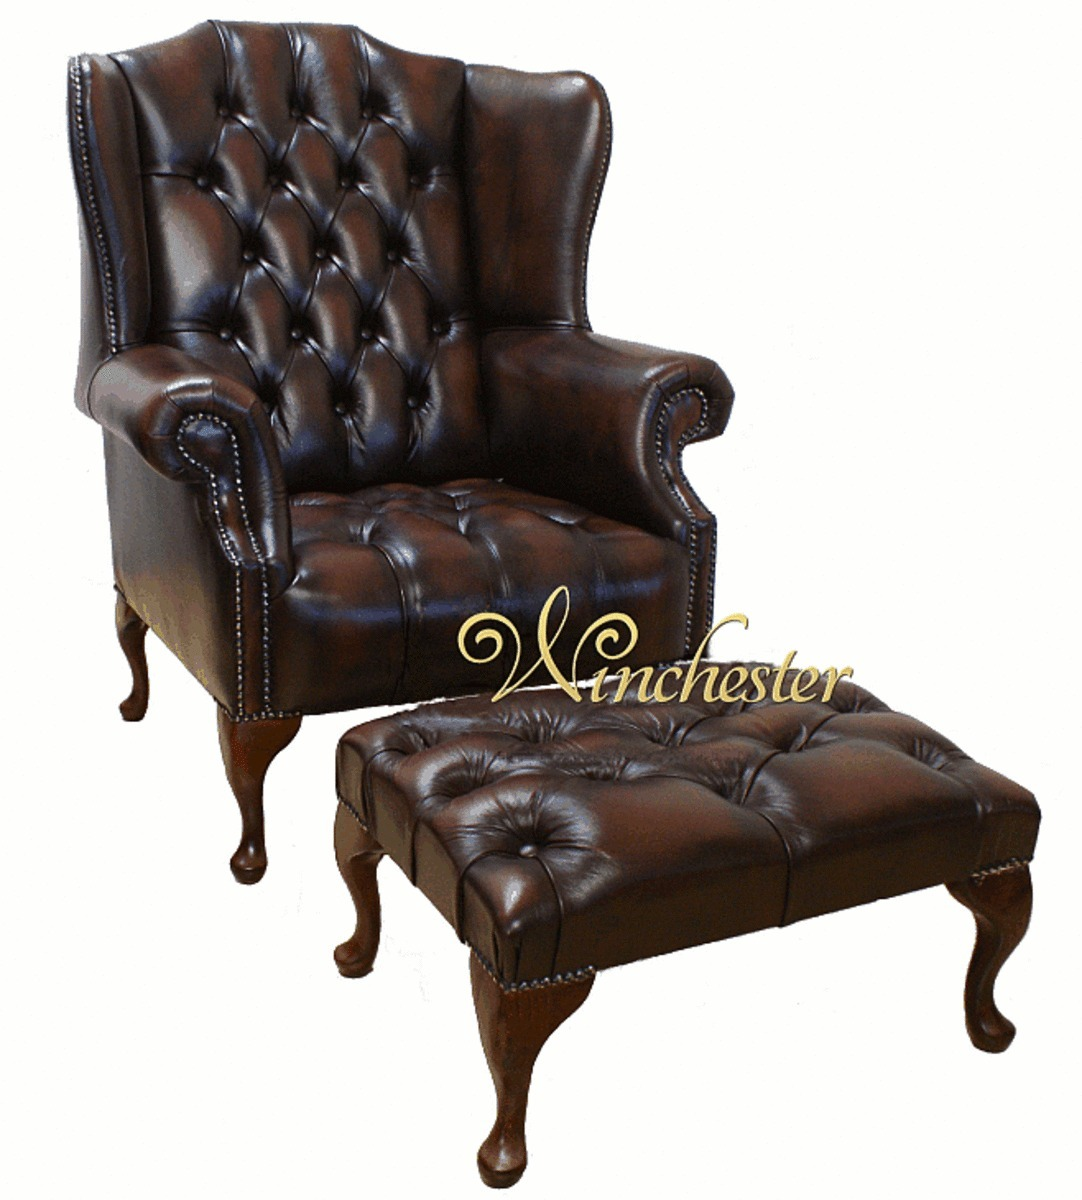 high back chesterfield sofa harveys 3 seater leather recliner mallory buttoned seat flat wing queen anne